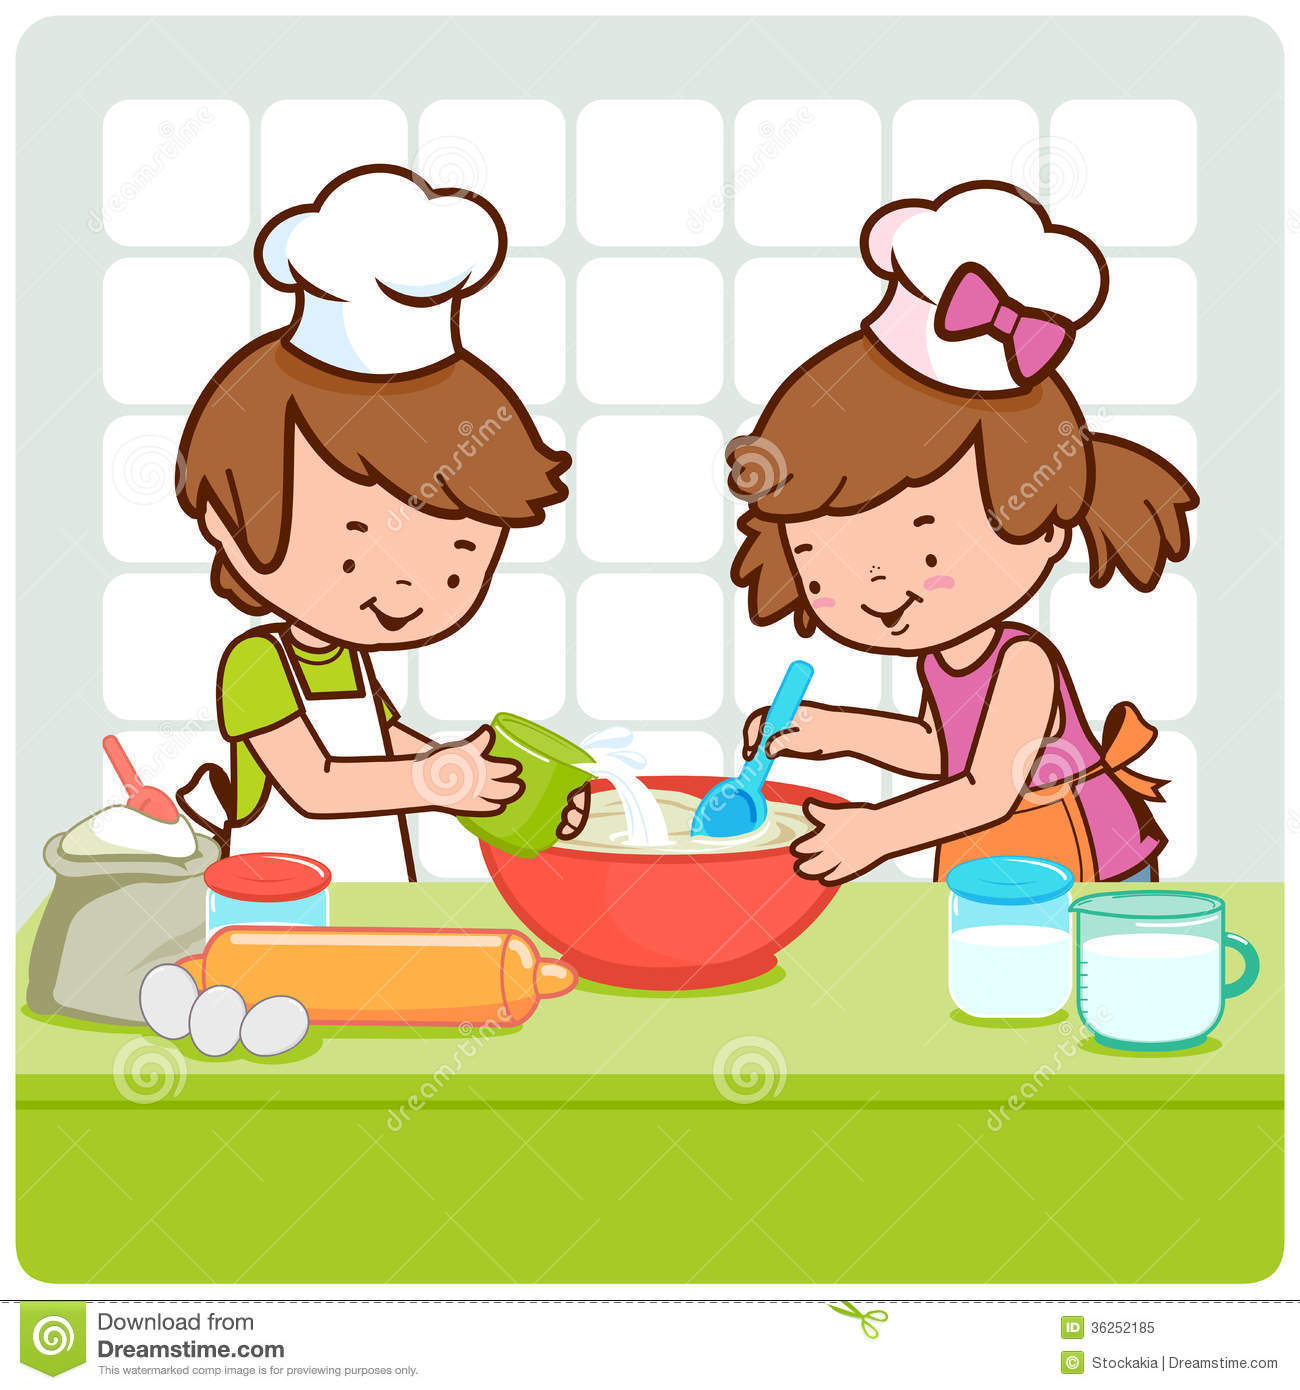 Cartoon kitchen counter gallery - Muse 20clipart